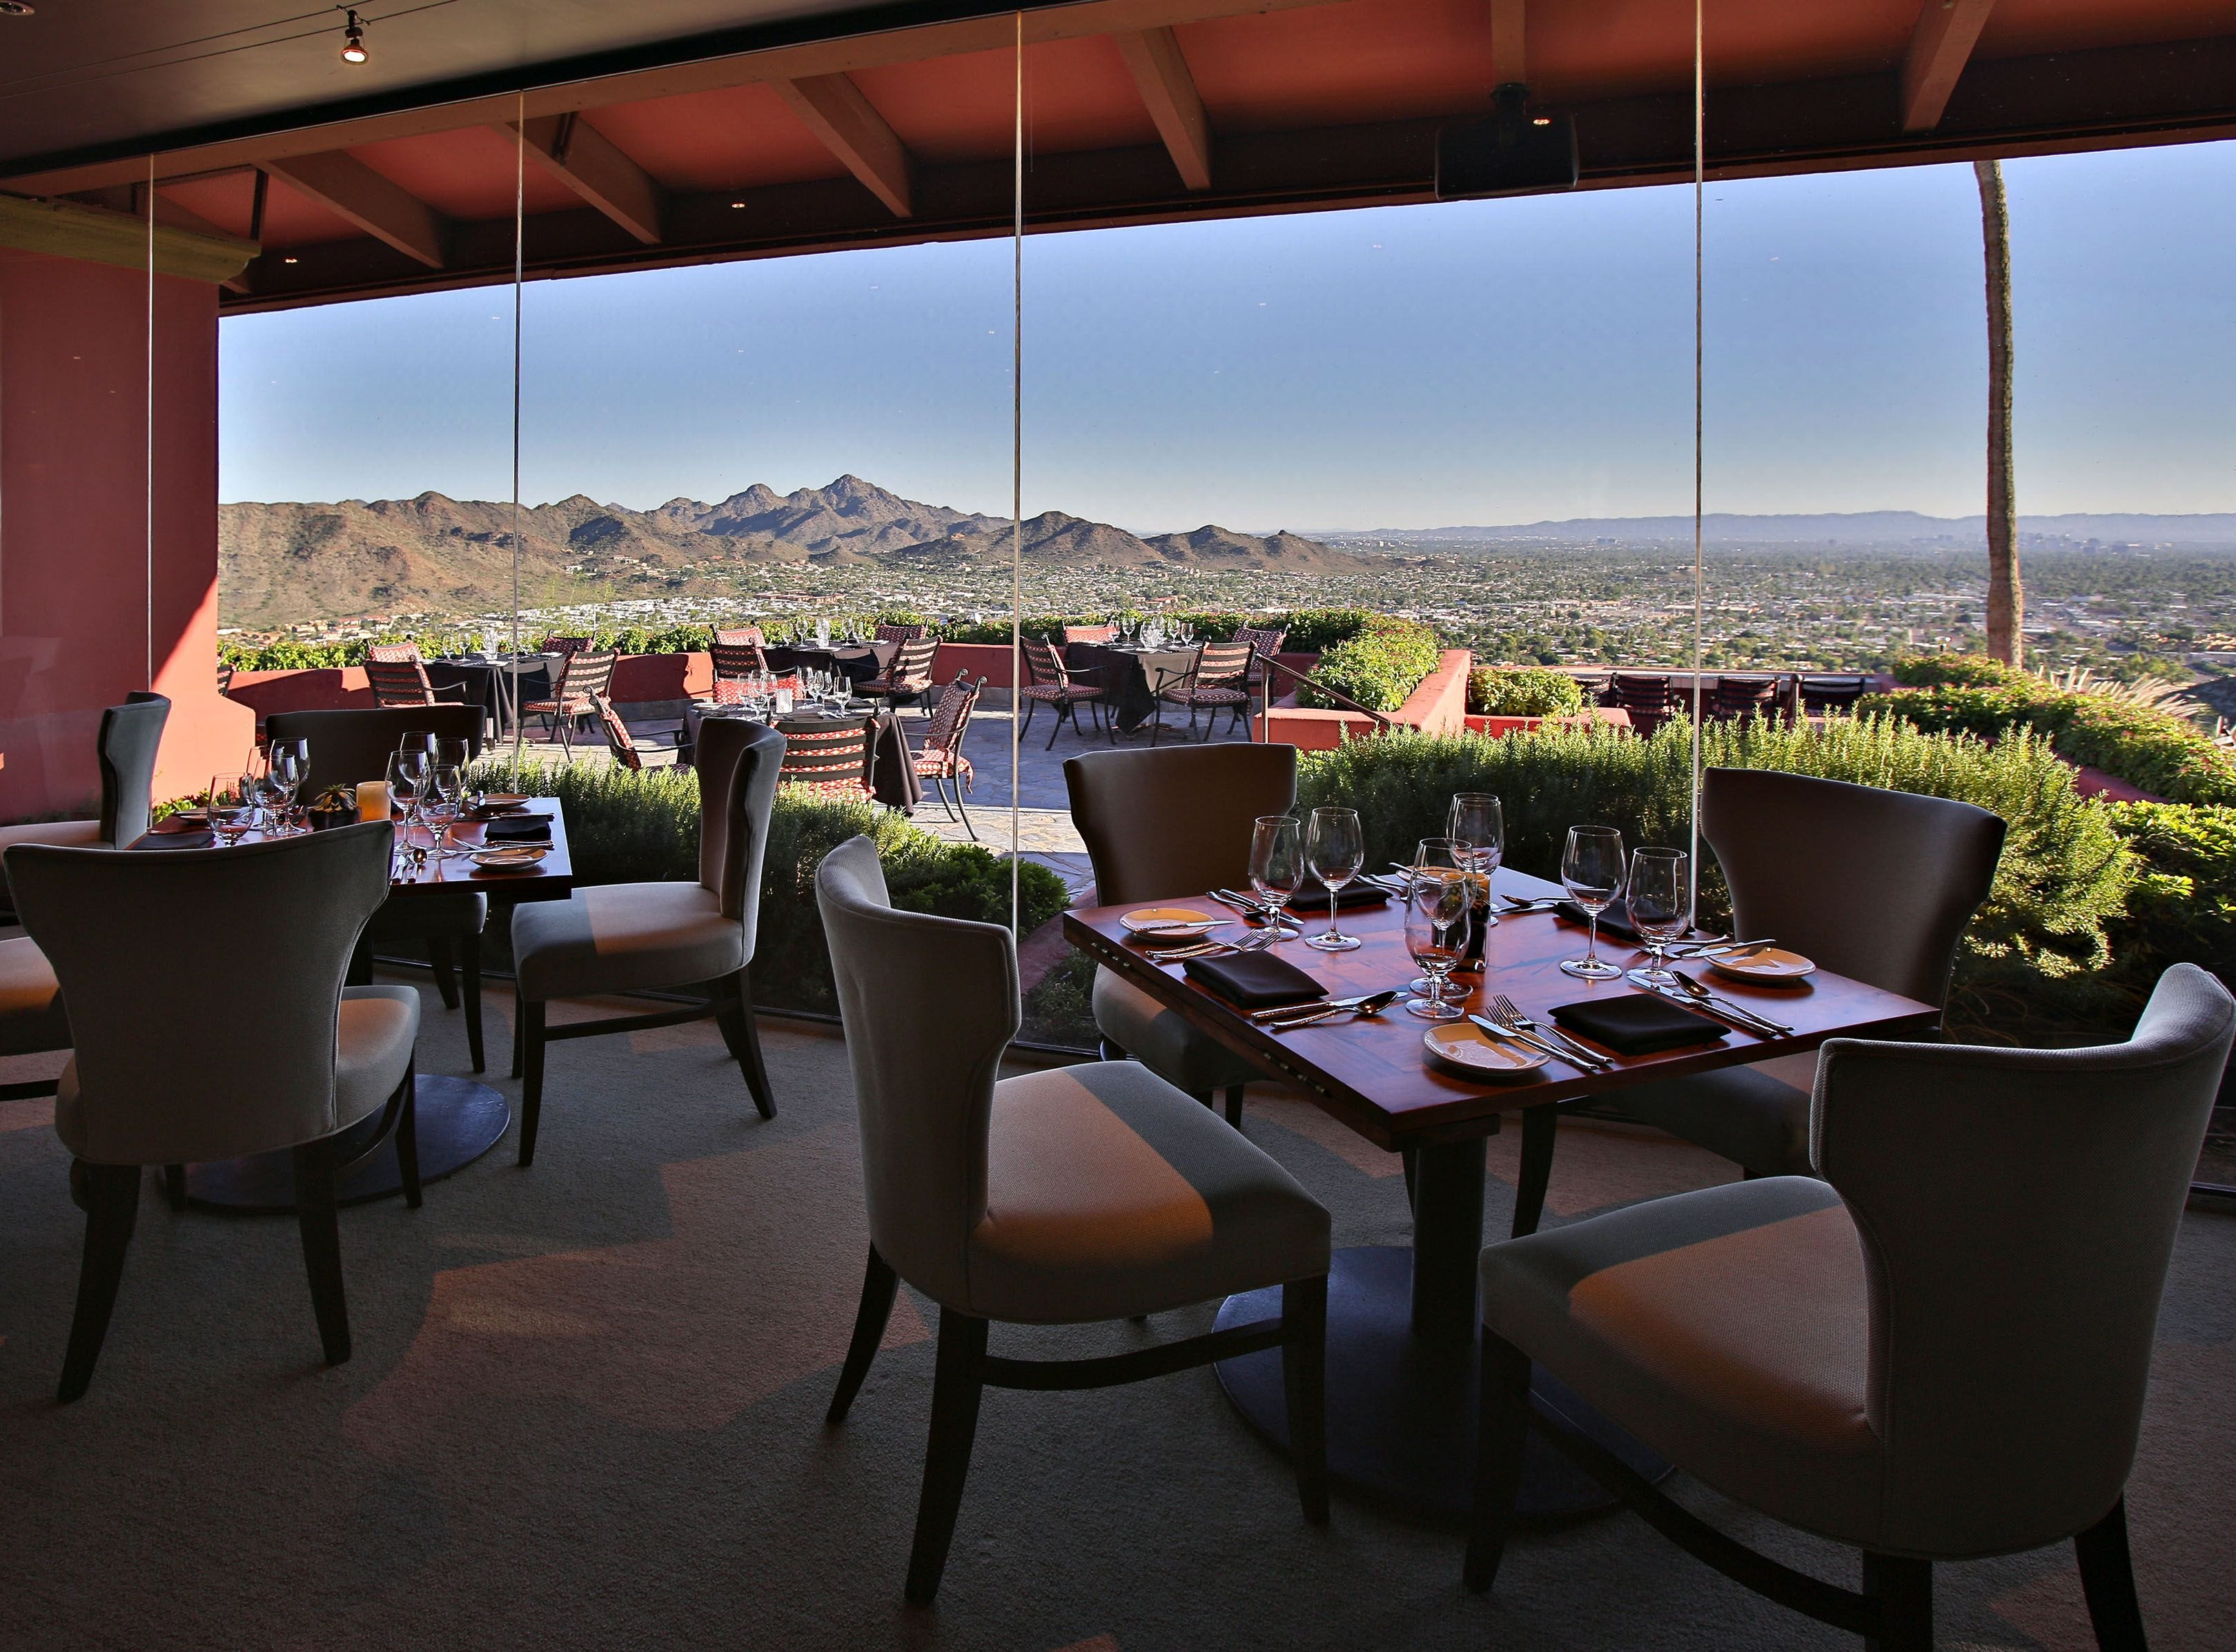 DIFFERENT POINTE OF VIEW, POINTE HILTON TAPATIO CLIFFS RESORT | Brunch ($69.95, $44.95 for ages 10 and younger) will feature carving stations with slow-roasted aged prime rib and roasted lamb top rounds, hot entrées, seafood, salads, sides and desserts. Reservations required. DETAILS: 11111 N. Seventh St., Phoenix. 602-866-6350 ext. 7200, tapatiocliffshilton.com.